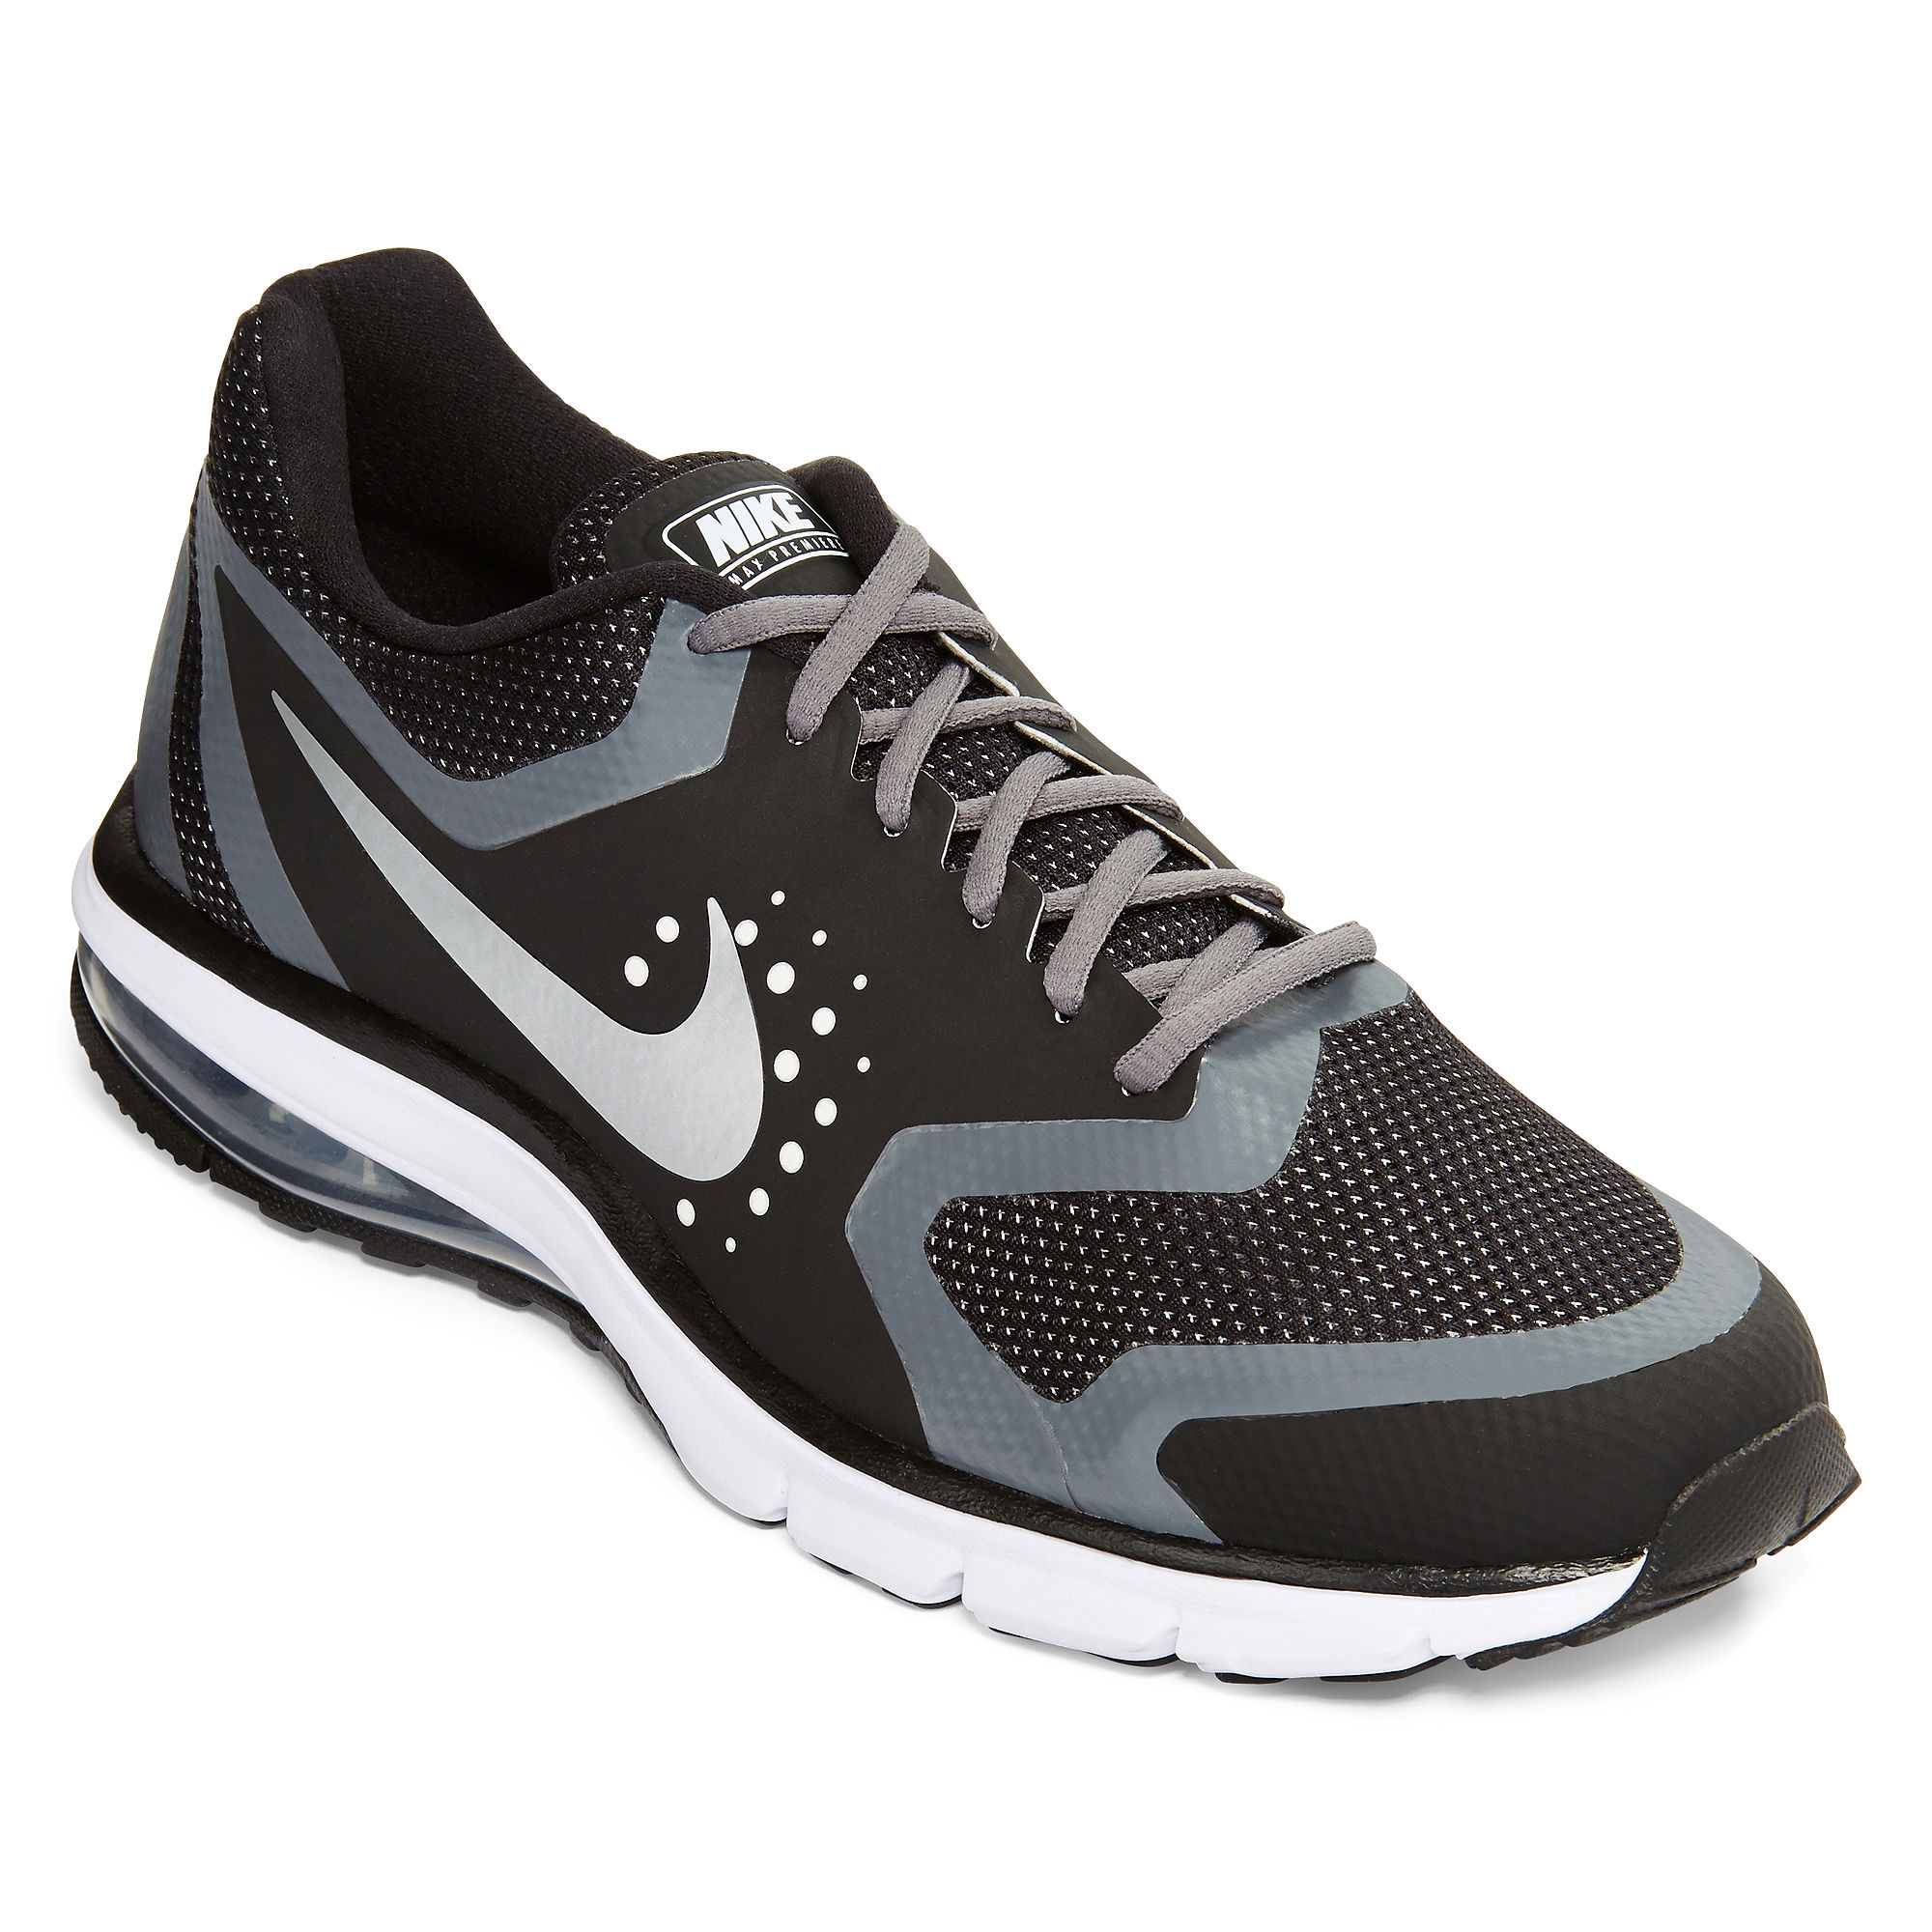 UPC 885259964125 Nike Air Max Premiere Running Shoes